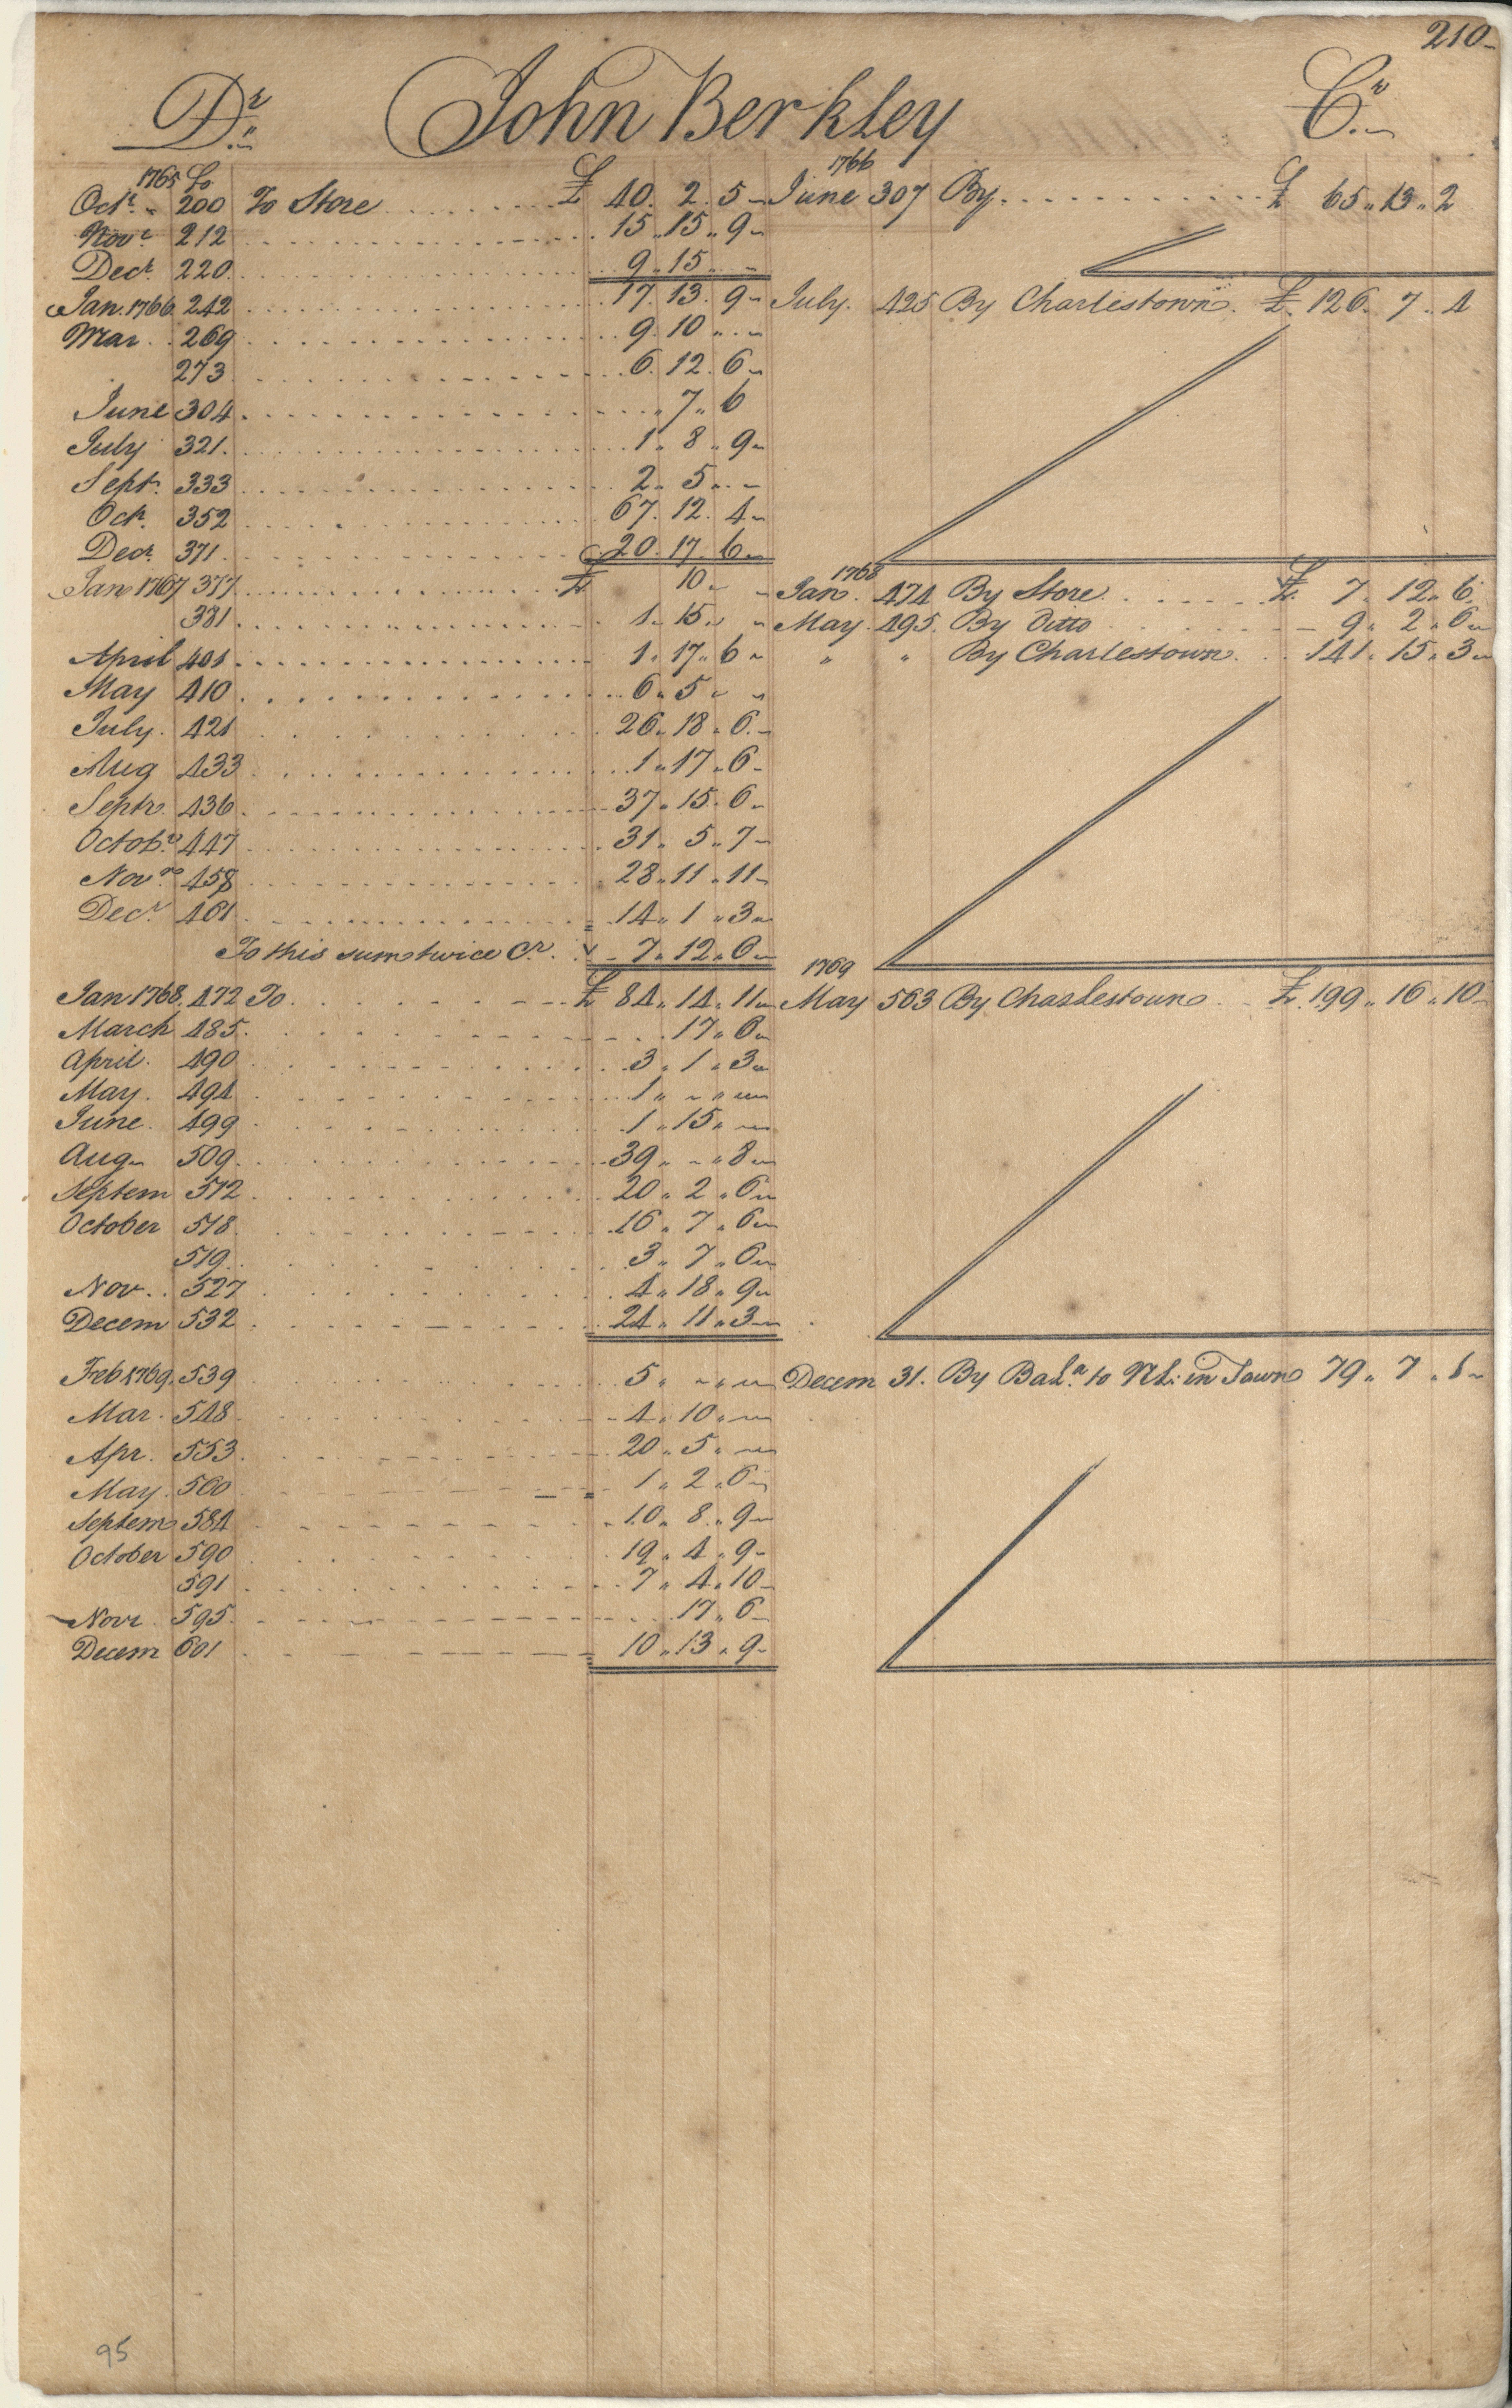 Plowden Weston's Business Ledger, page 210